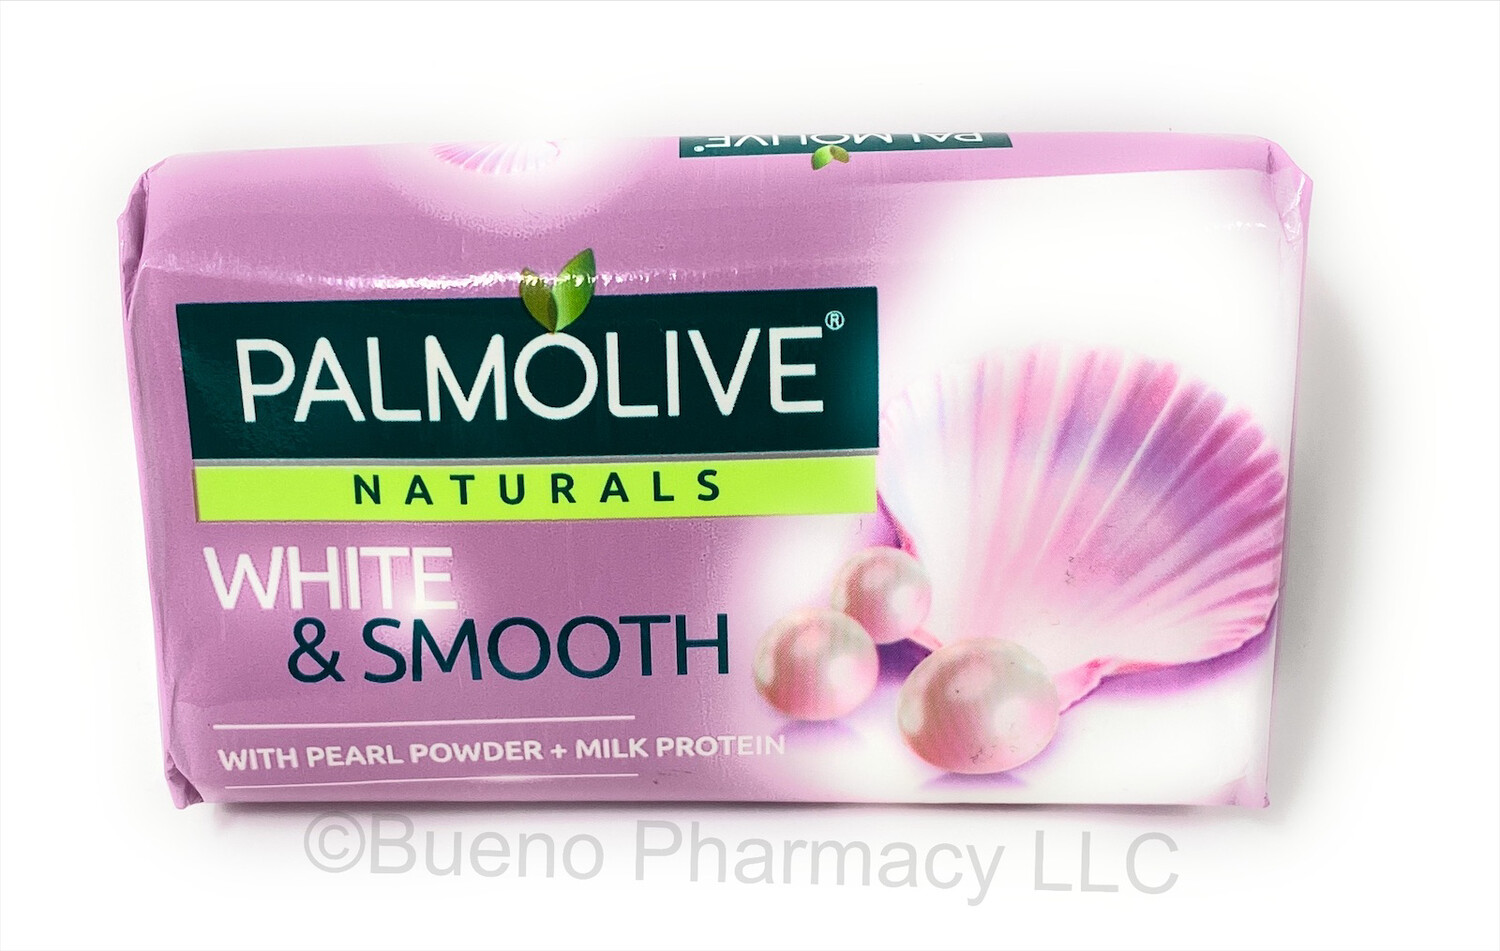 Palmolive White & Smooth Soap, with Pearl Powder + Milk Protein